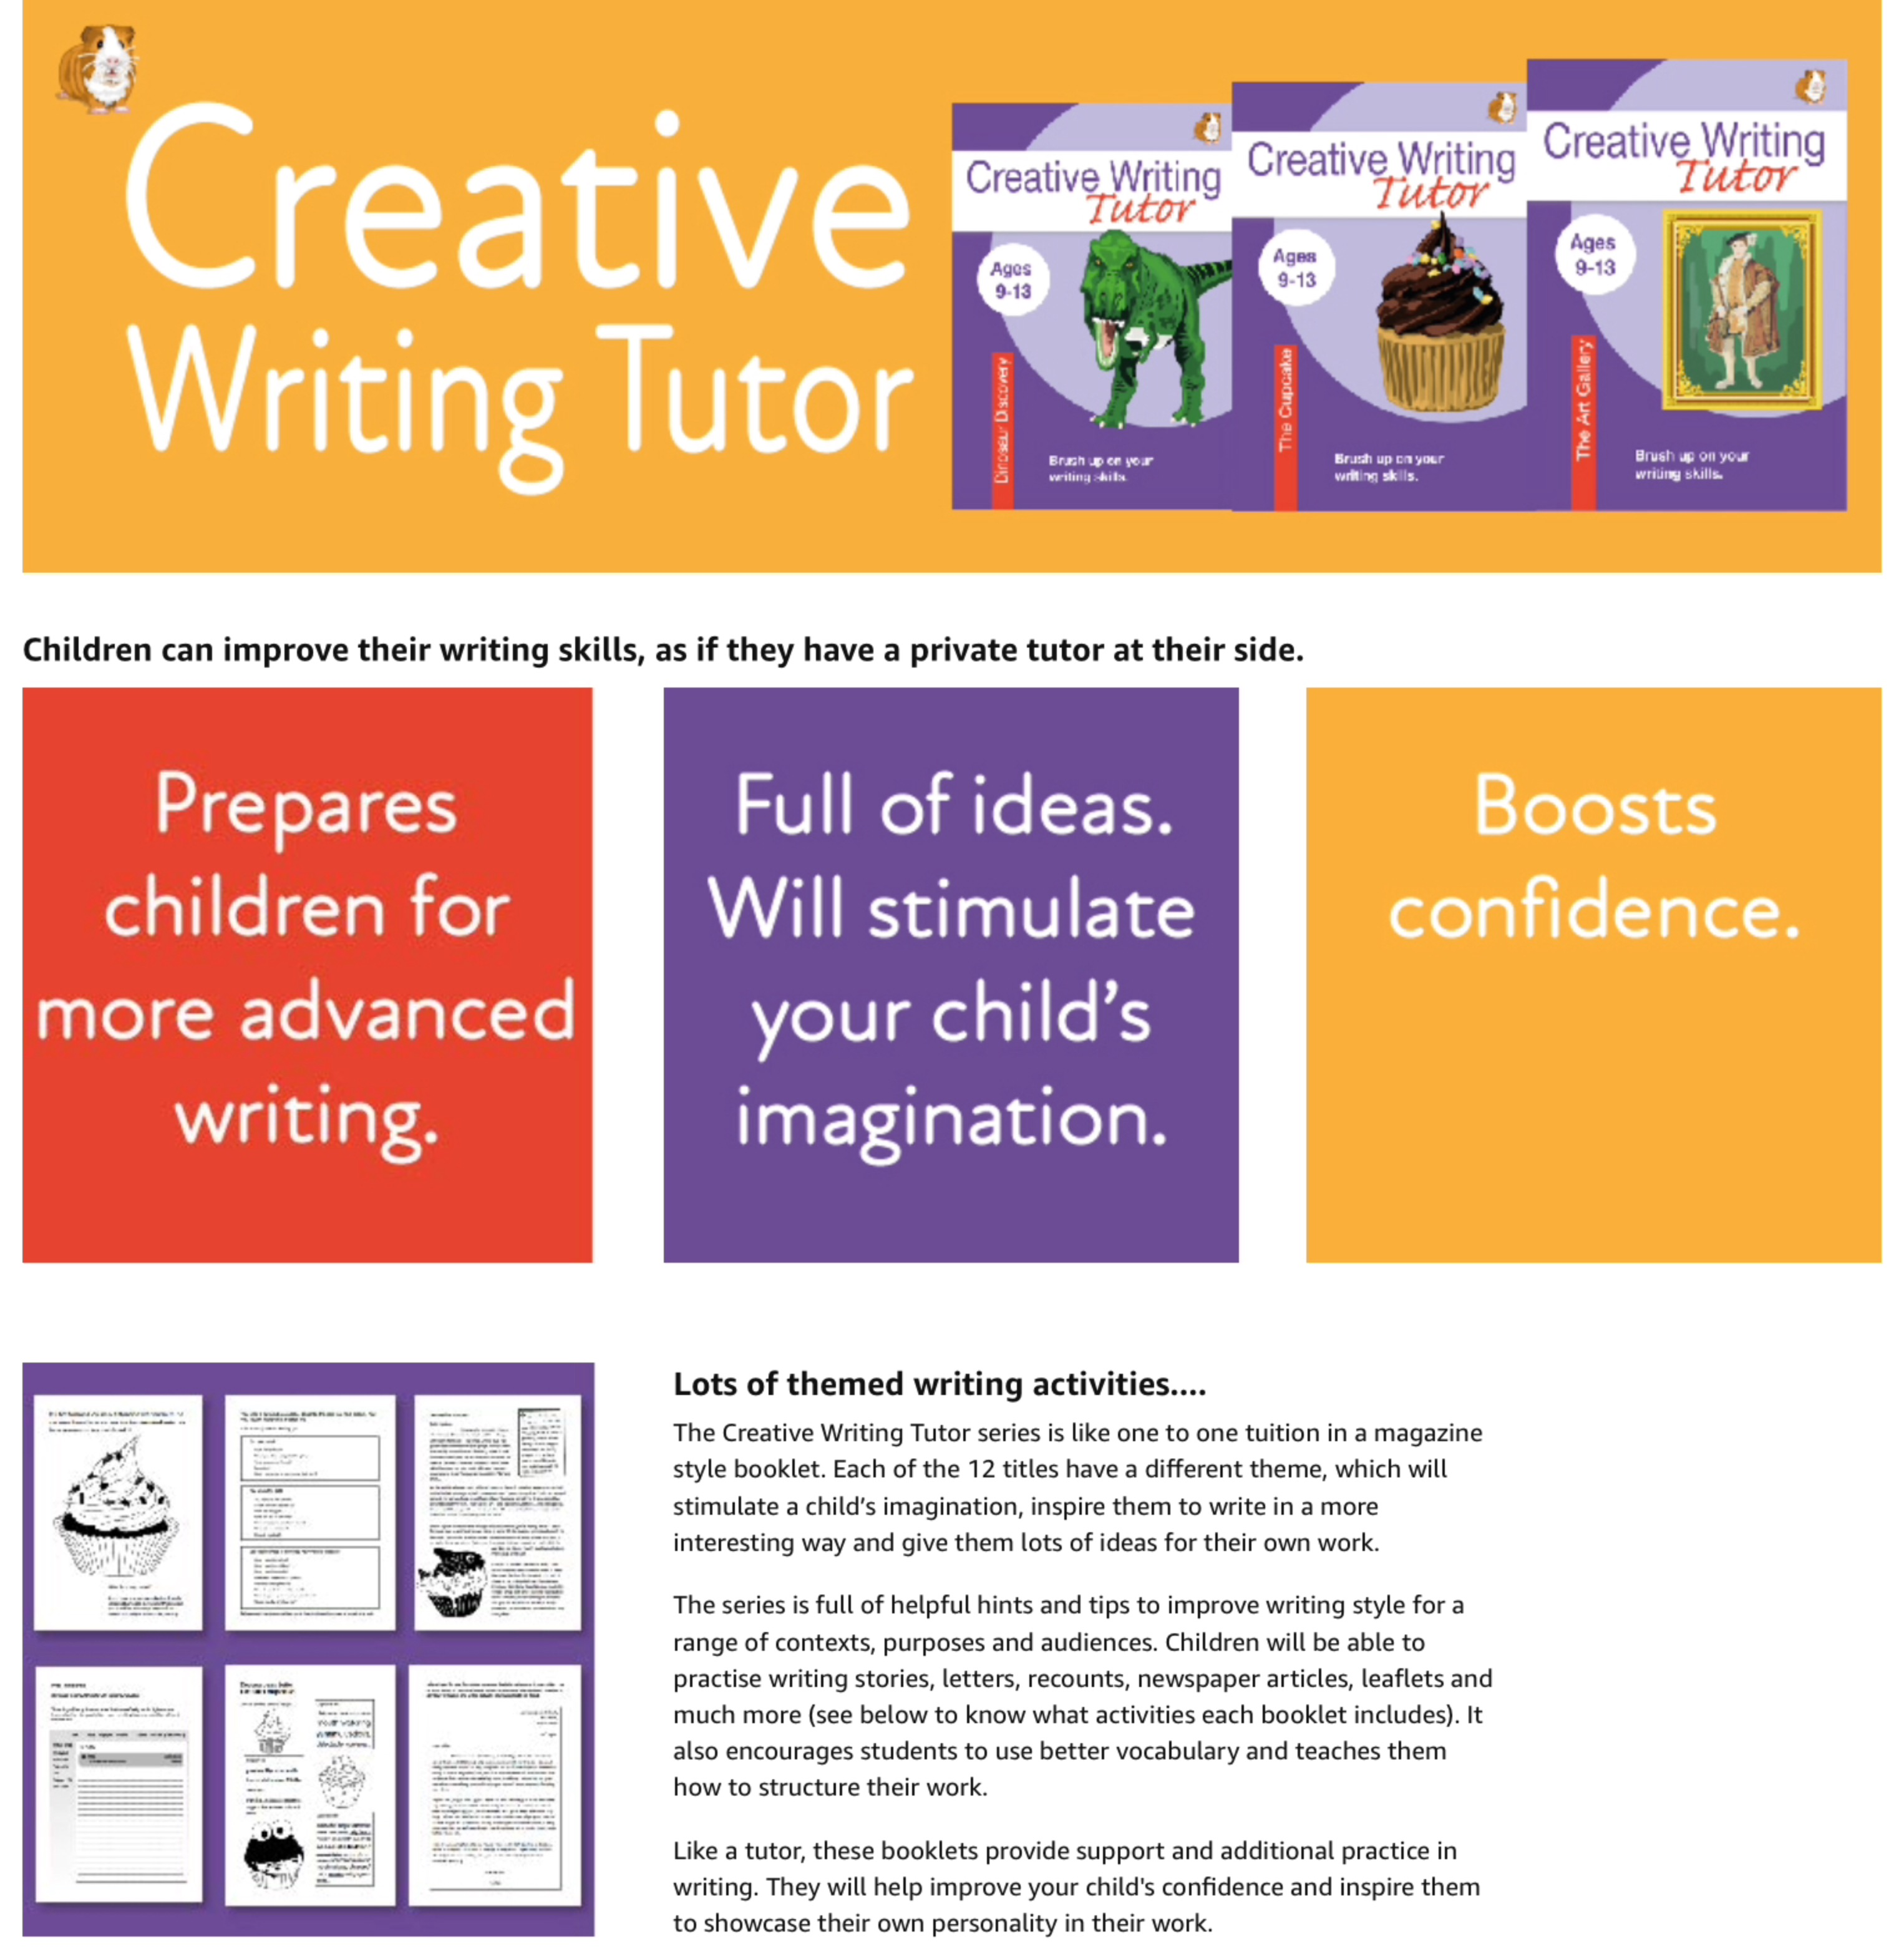 The New Headteacher: Brush Up On Your Writing Skills (Creative Writing Tutor) (9-13) Print Version